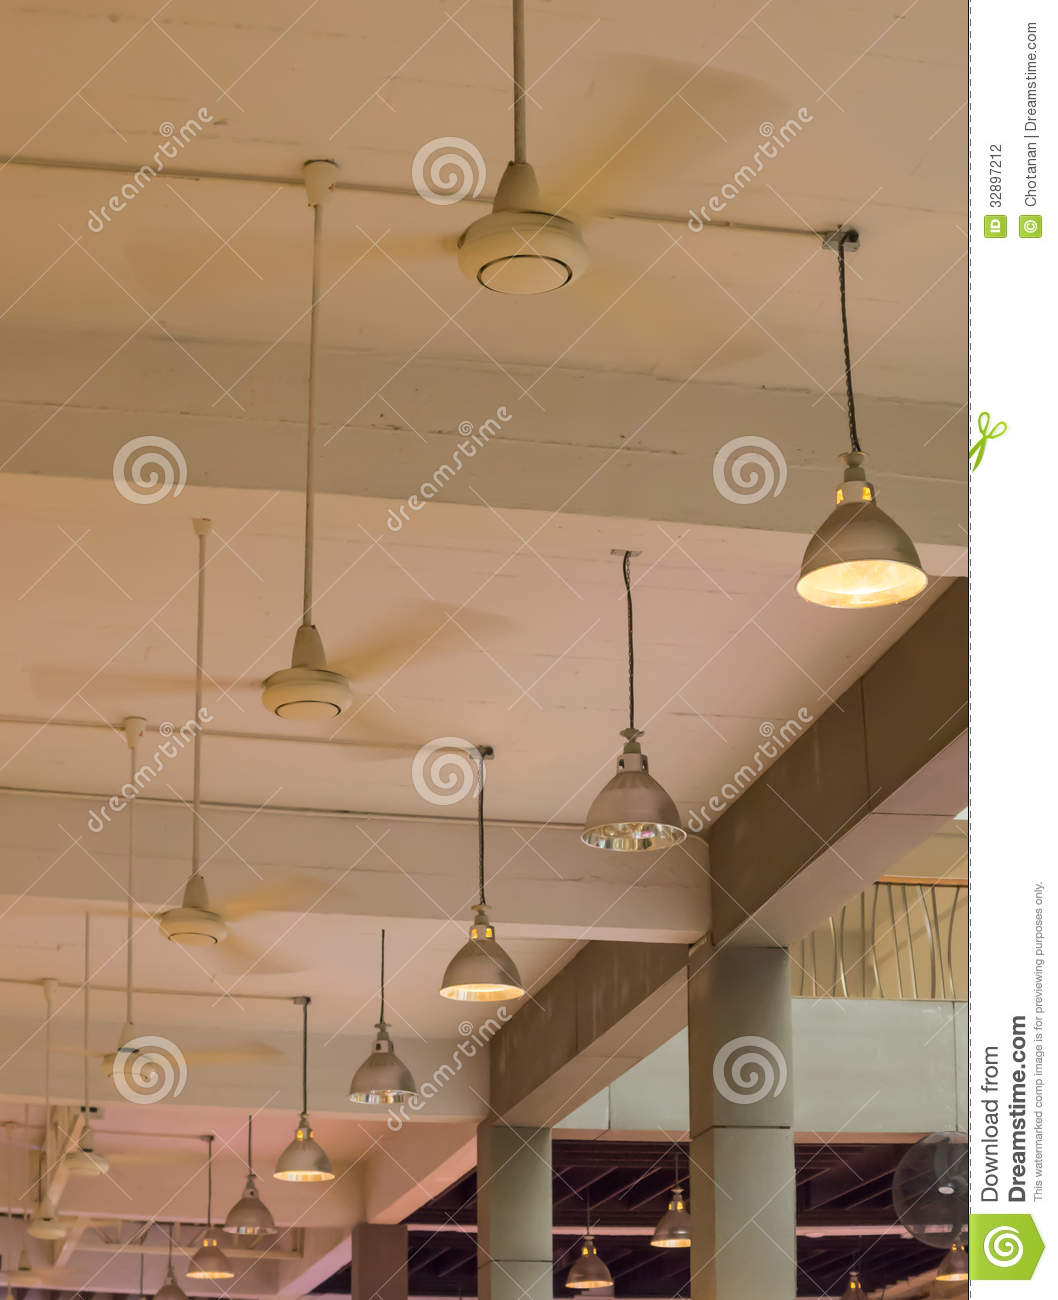 Ceiling Fan Stock Photo  Image Of Wire  Electricity  House